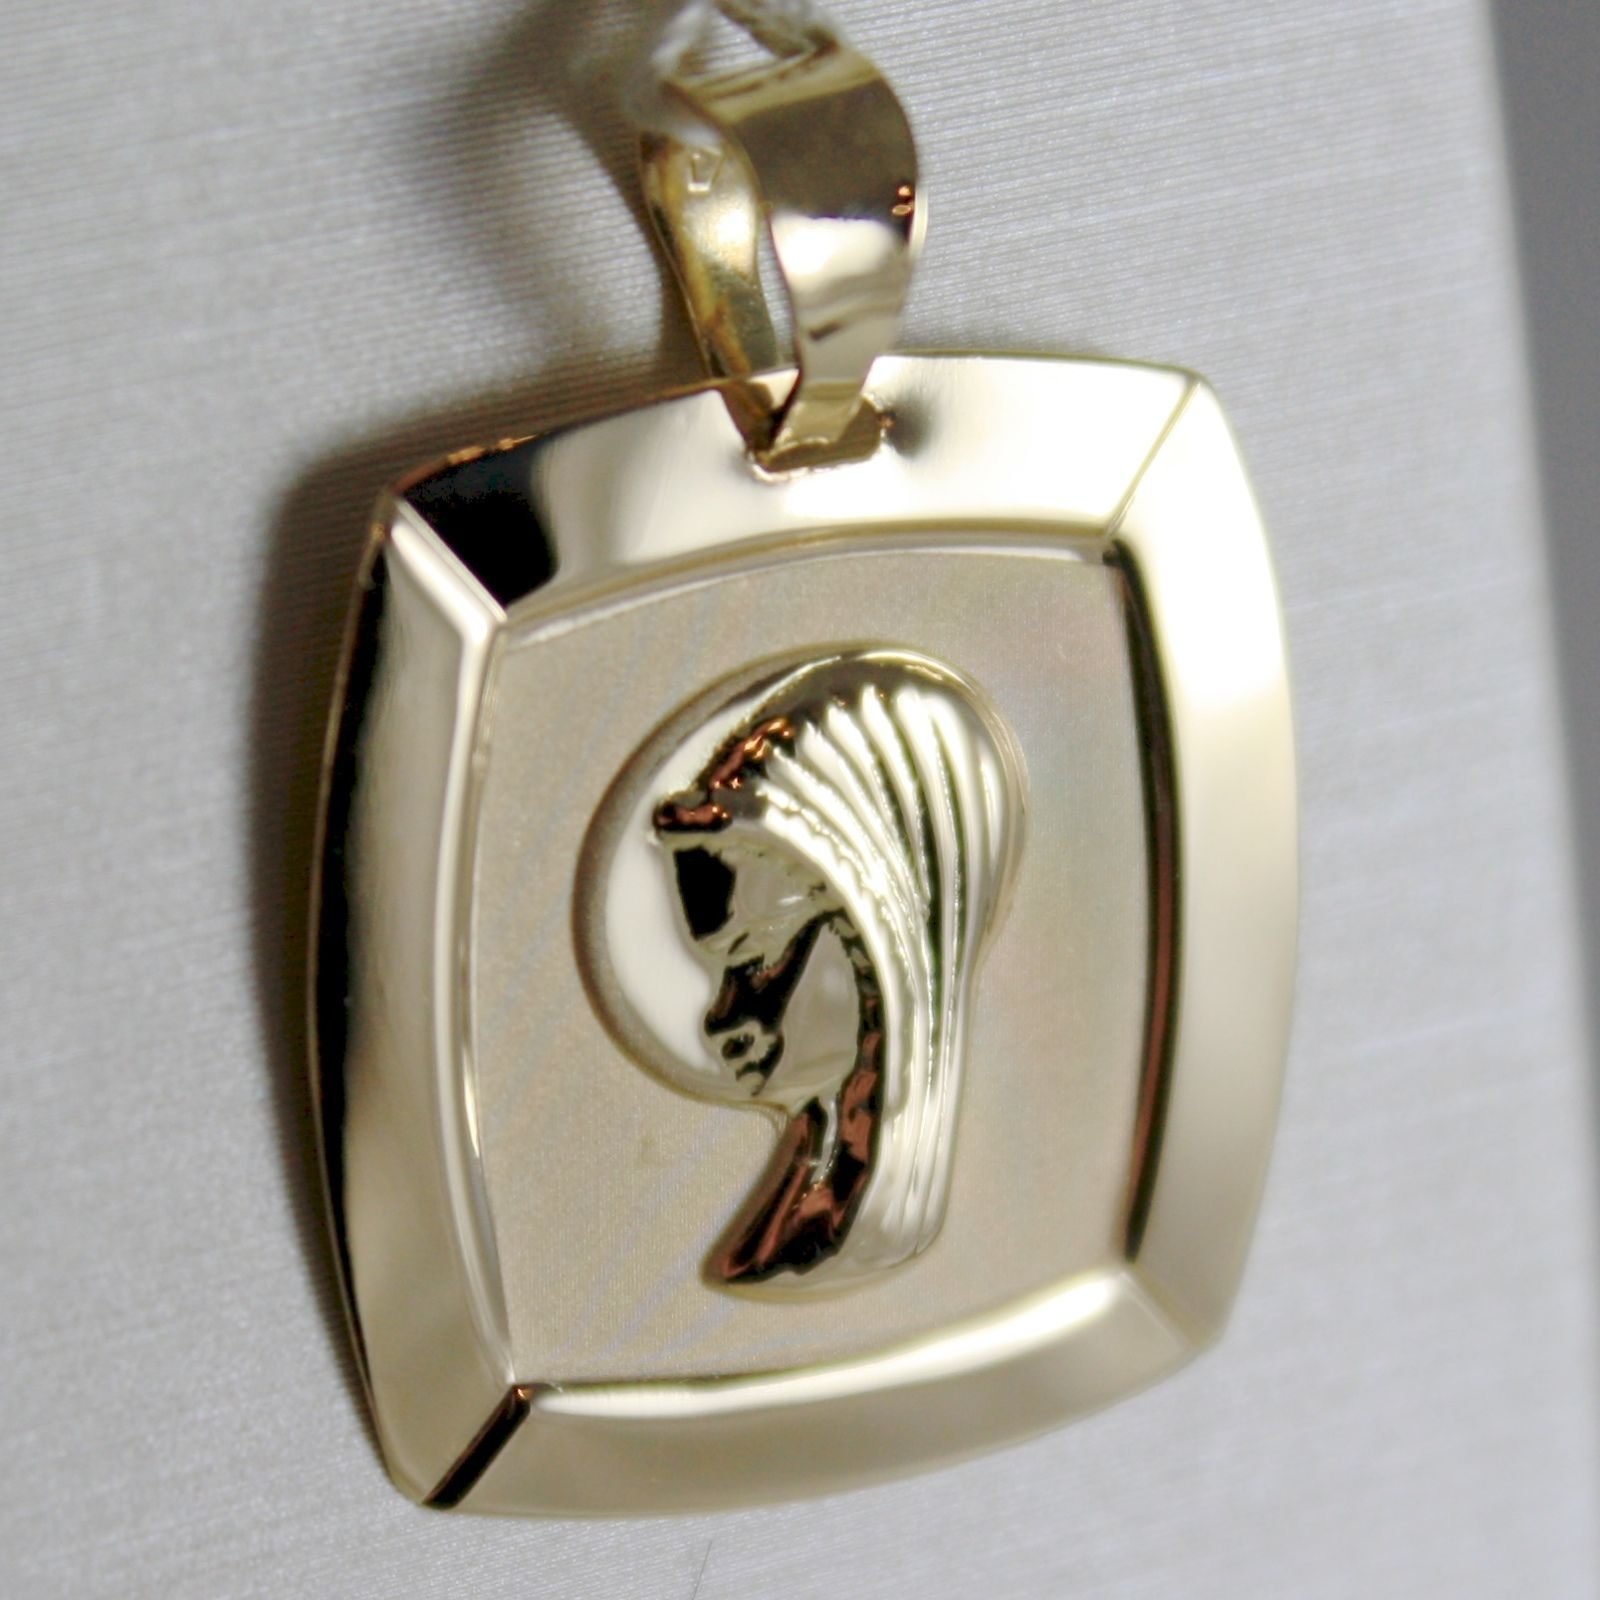 18K YELLOW GOLD SQUARE MEDAL VIRGIN MARY MADONNA, ENGRAVABLE SATIN MADE IN ITALY